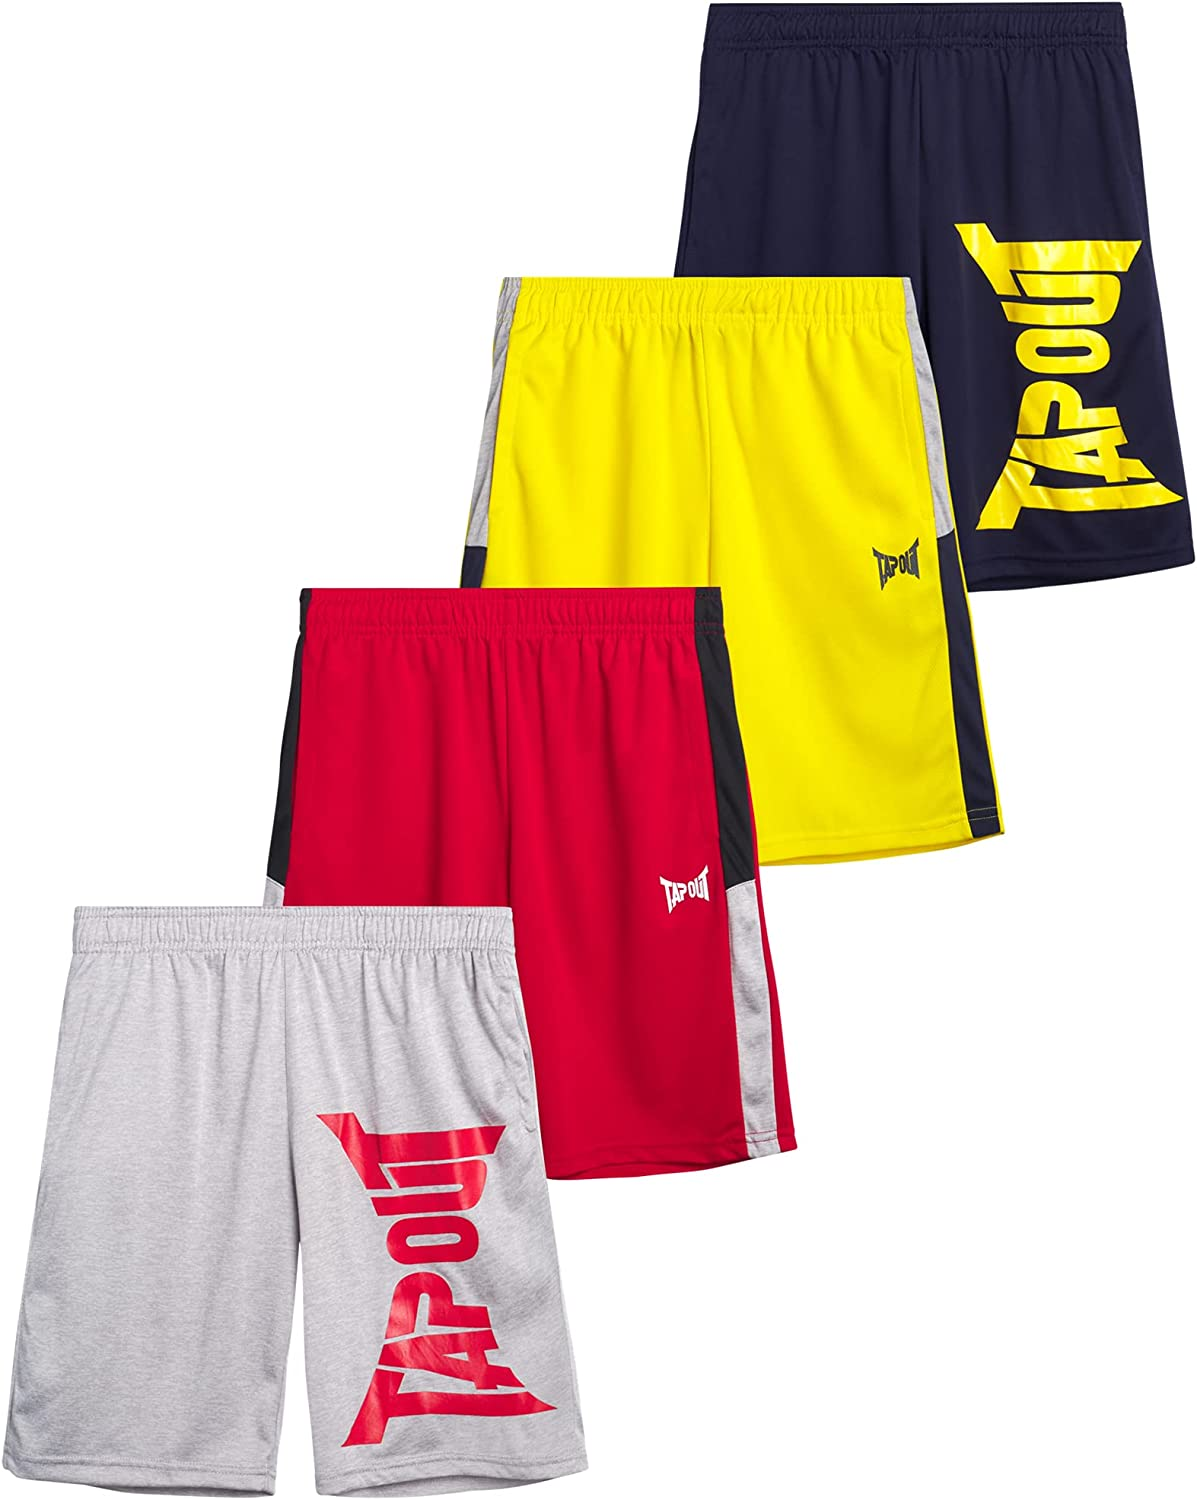 TAPOUT Boys' Athletic Shorts - Active Basketball New Ranking TOP15 arrival Sho Performance